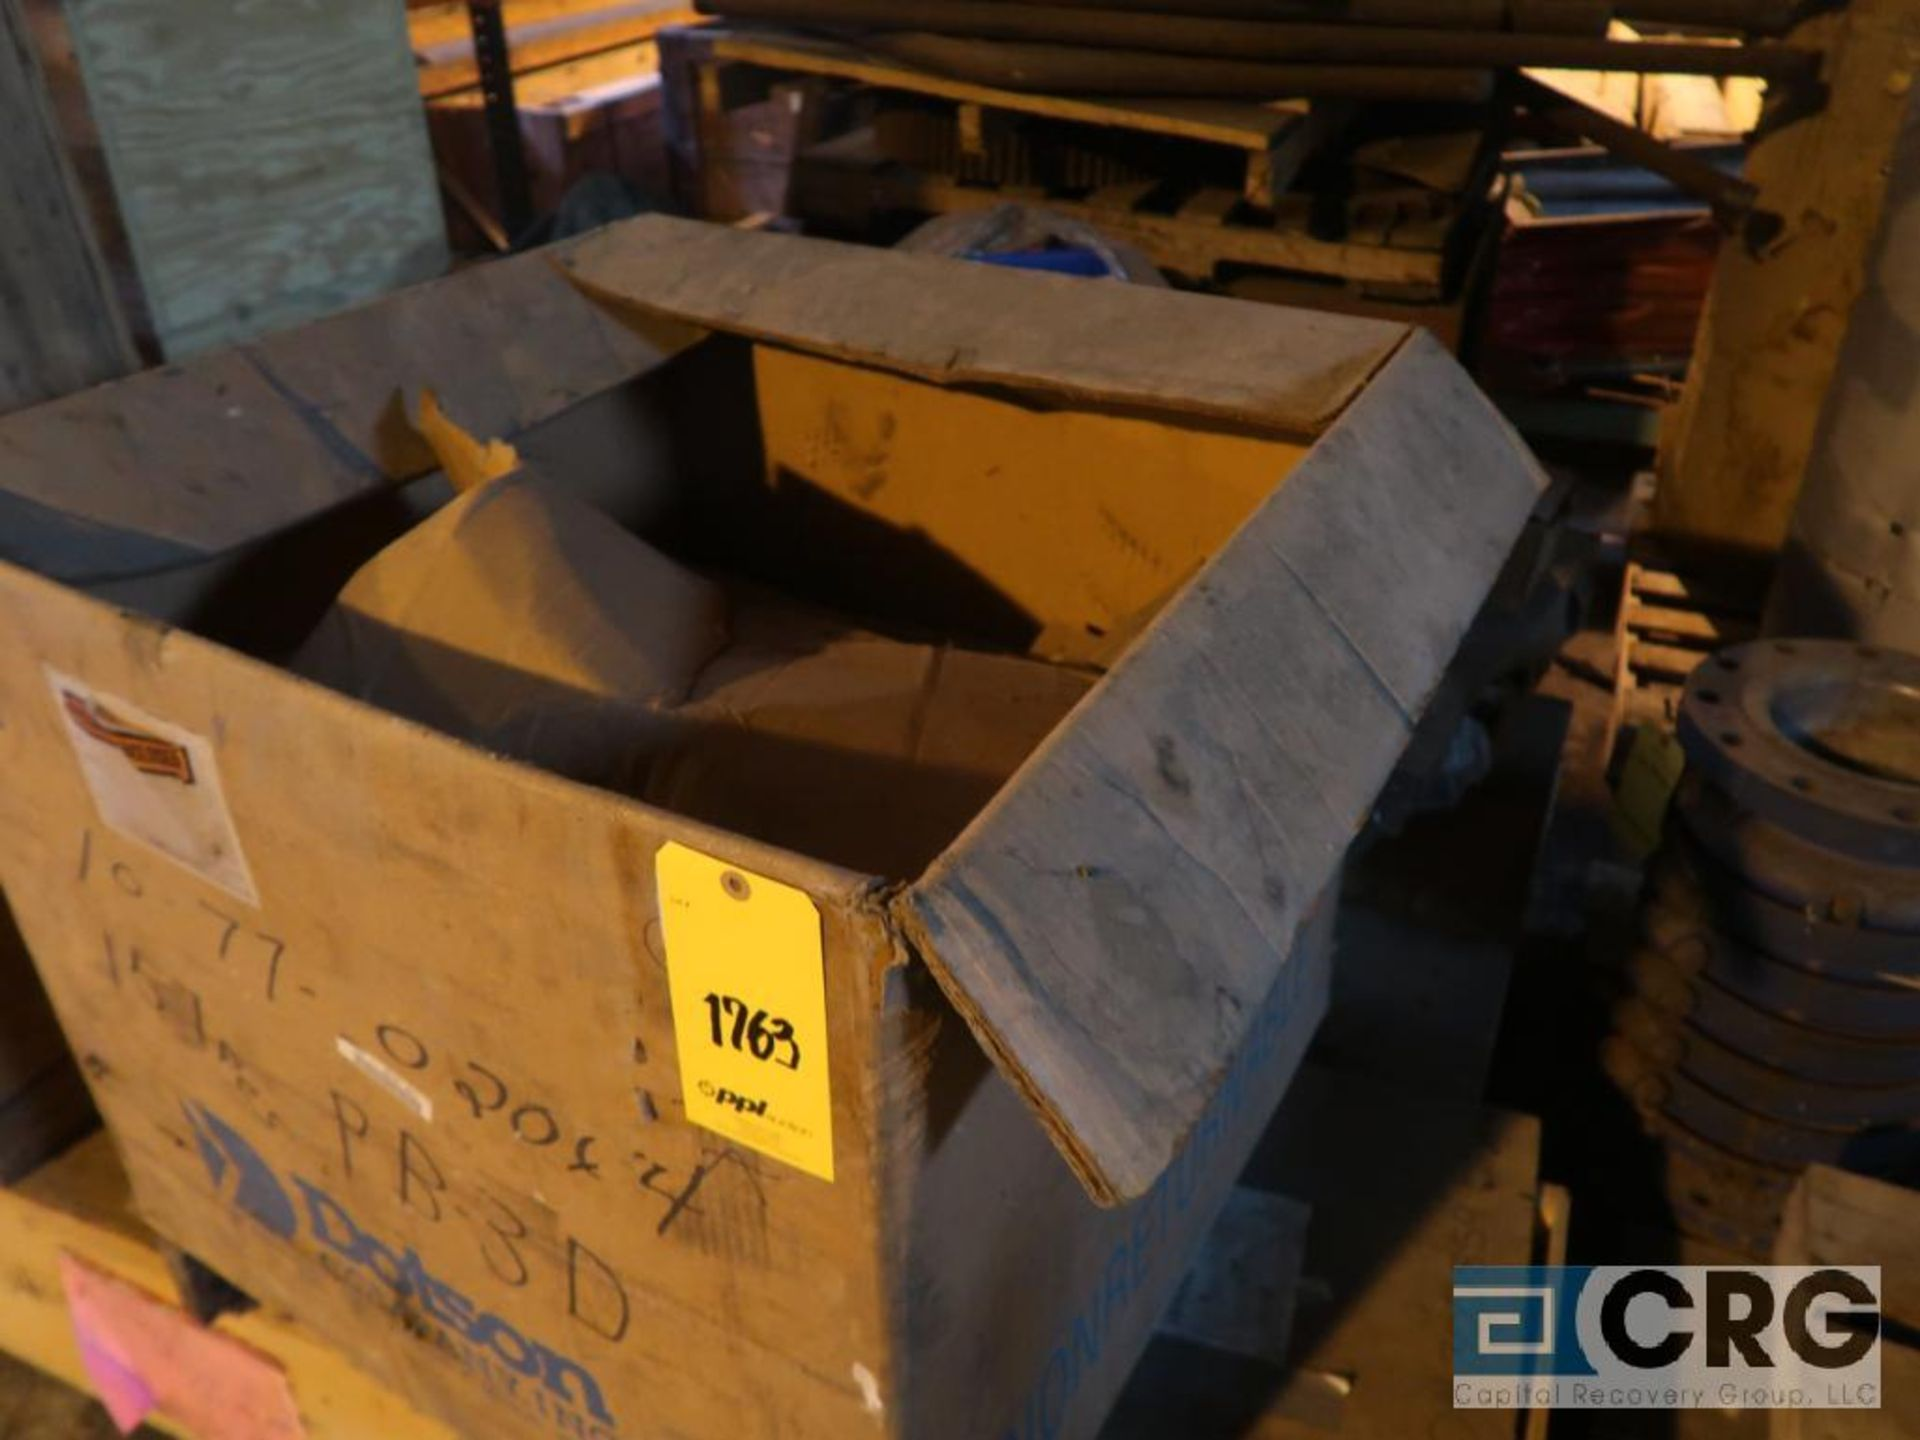 Lot of assorted parts including expansion joint, valves, fan blade, and rotors (Next Bay Cage Area) - Image 9 of 15